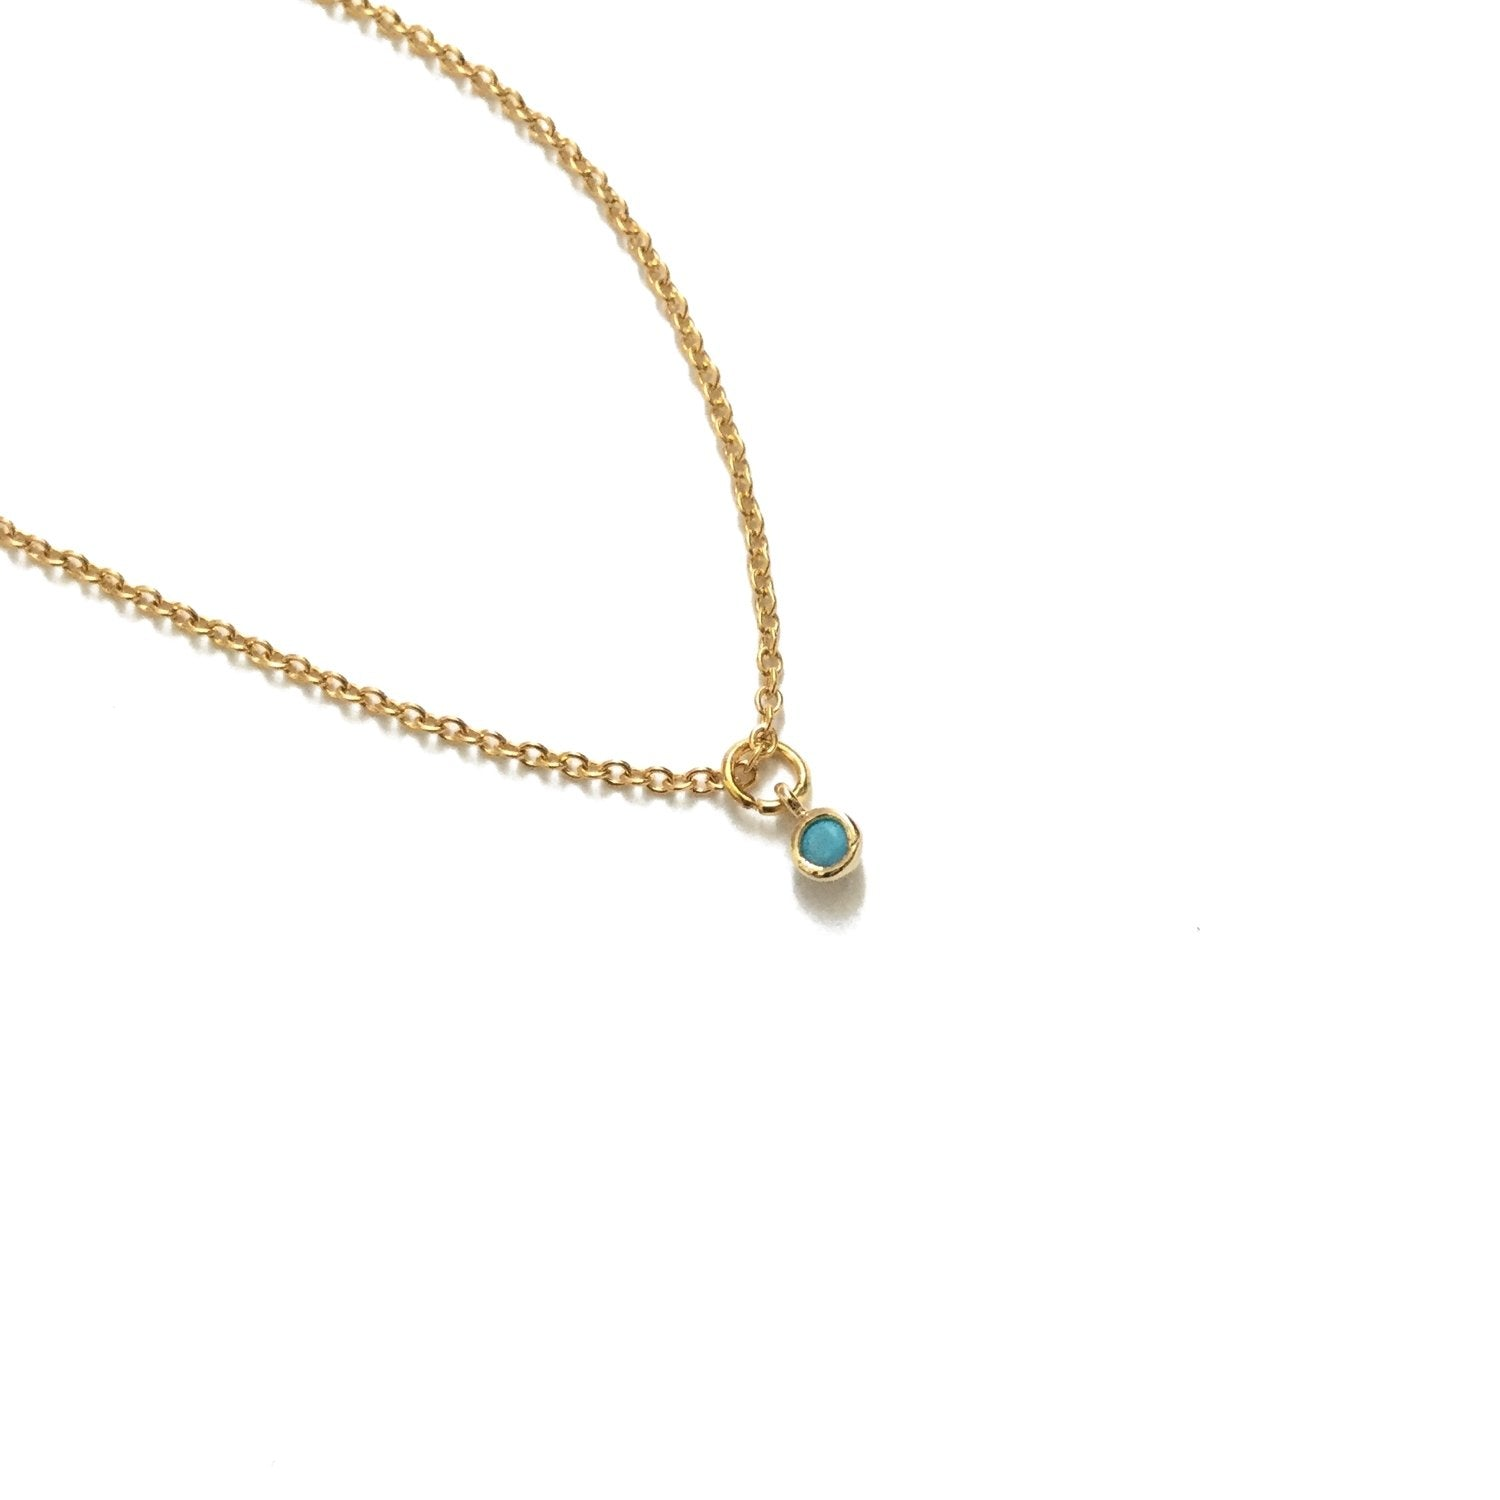 dainty turquoise drop pendant necklace